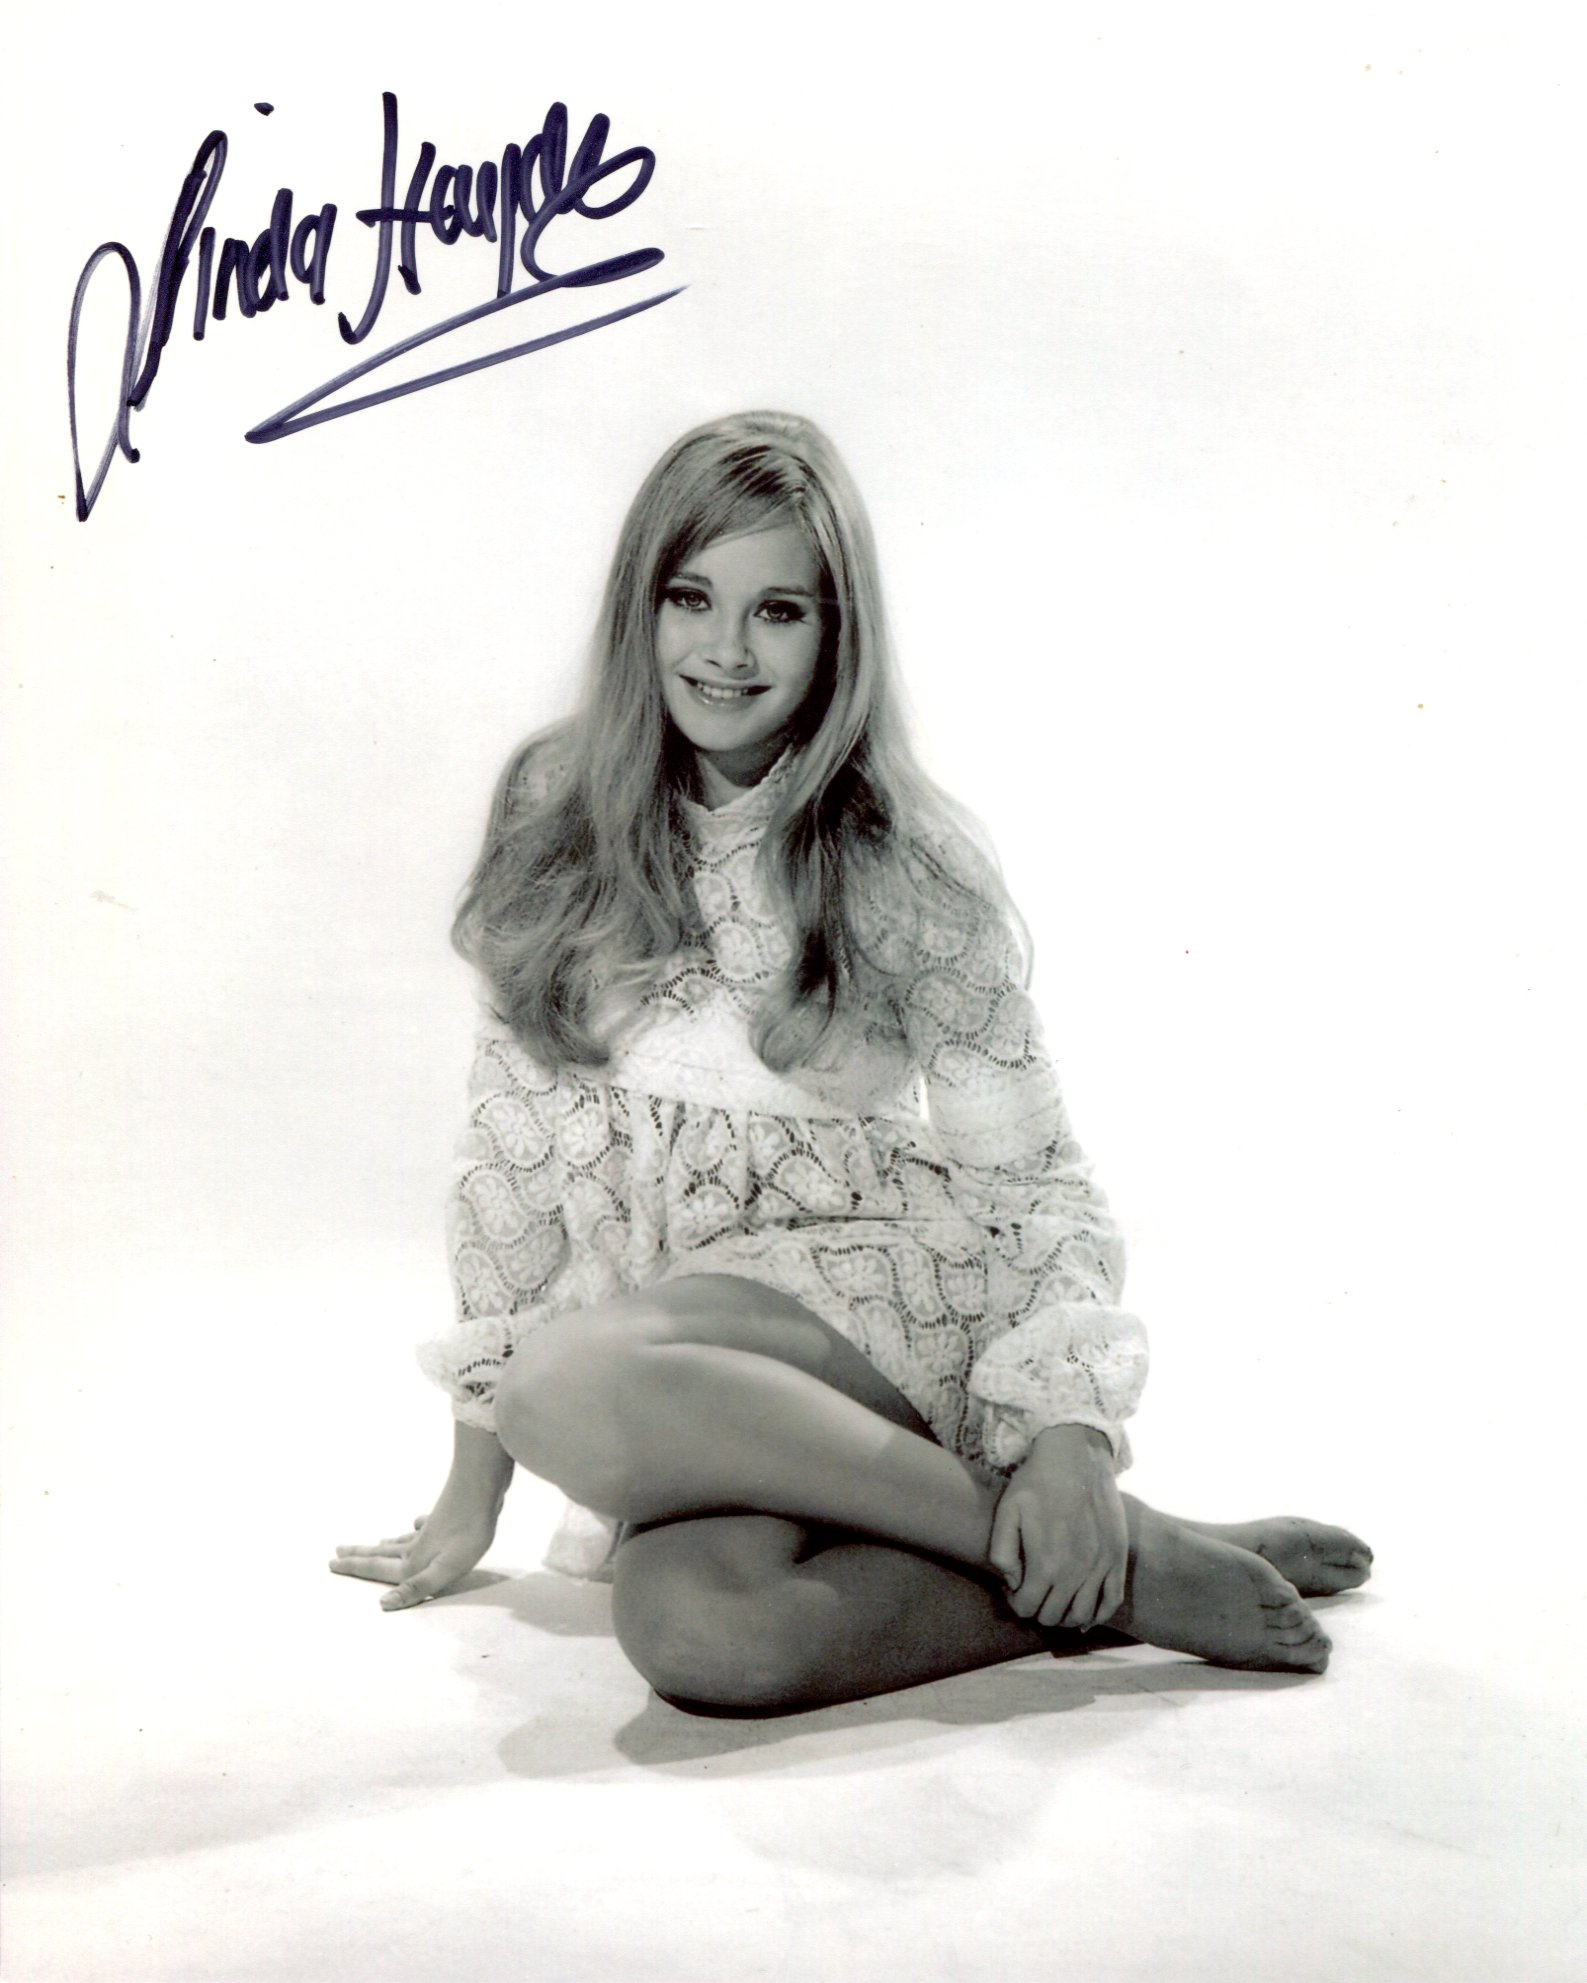 Hammer Horror 8x10 photo signed by Hammer Horror movie actress Linda Hayden. Good condition. All